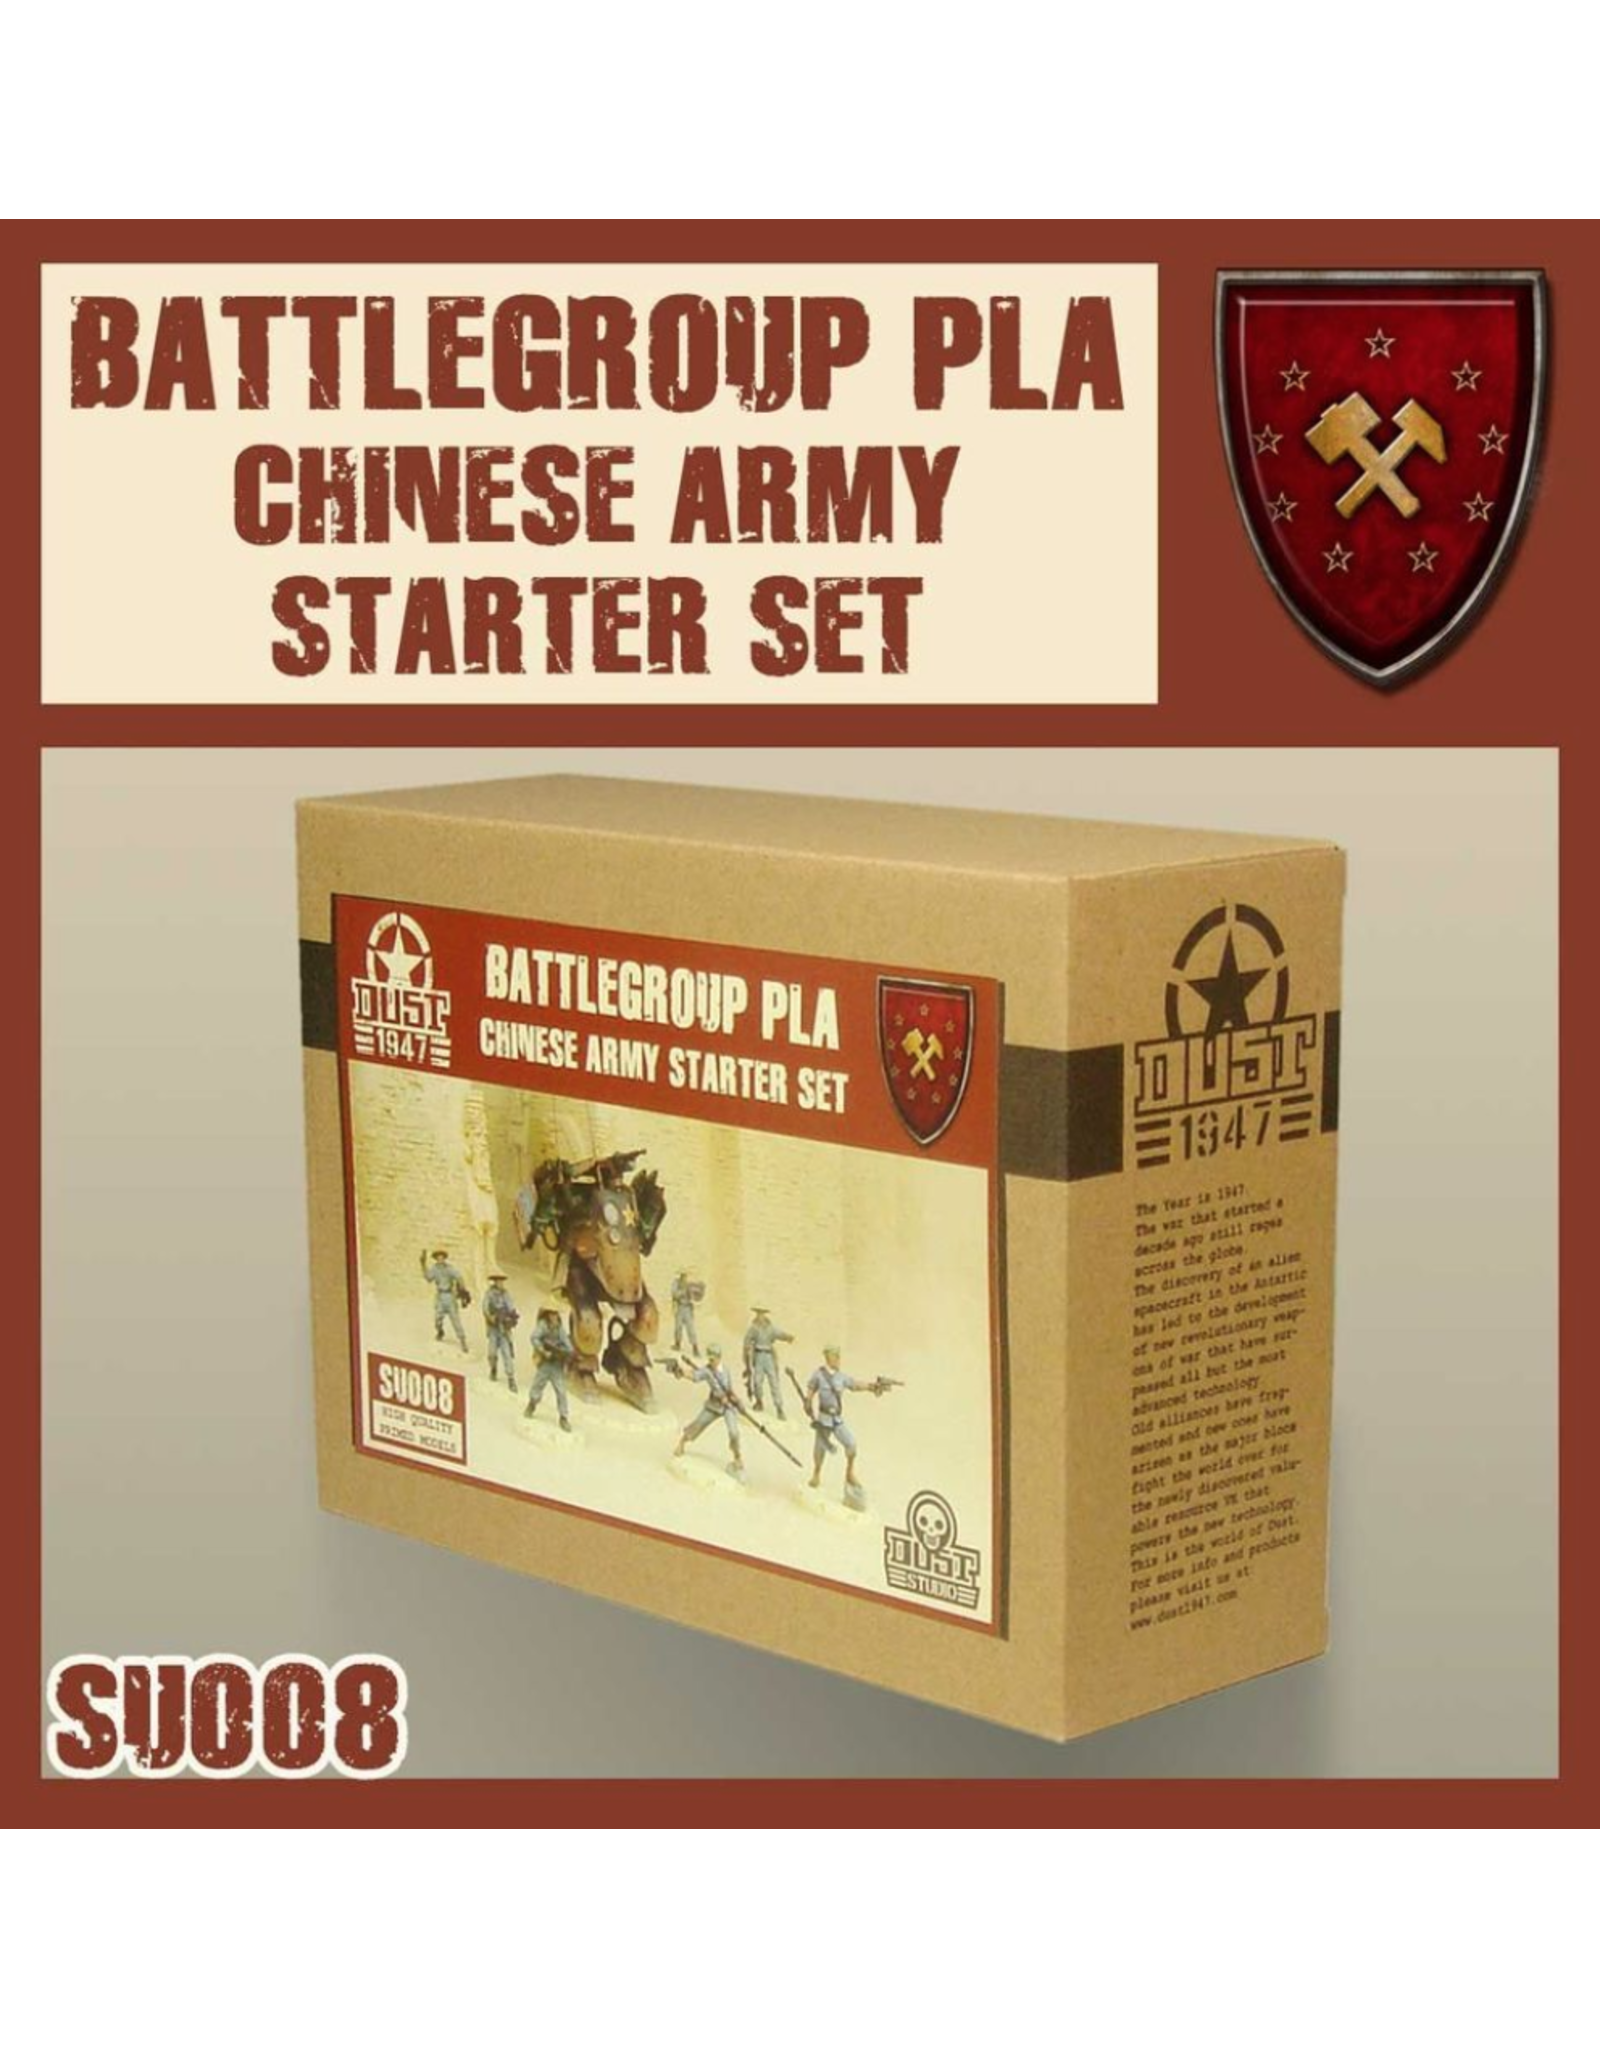 DUST 1947 Chinese Army Starter